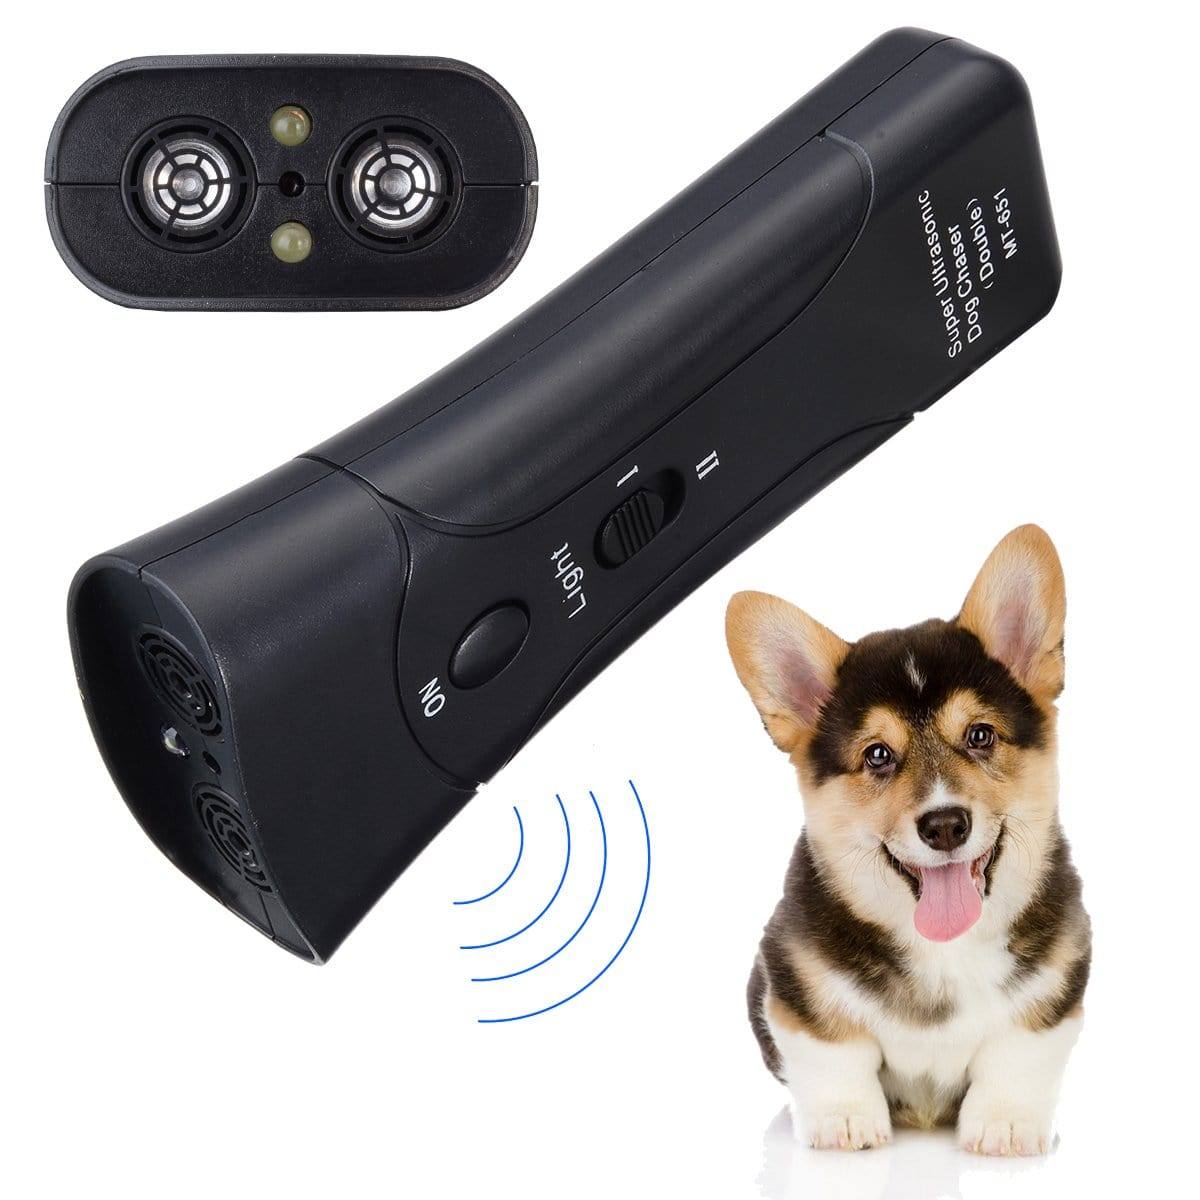 Ultrasonic Dog Anti Barking Trainer - Multifunction with High Power LED Flashlight